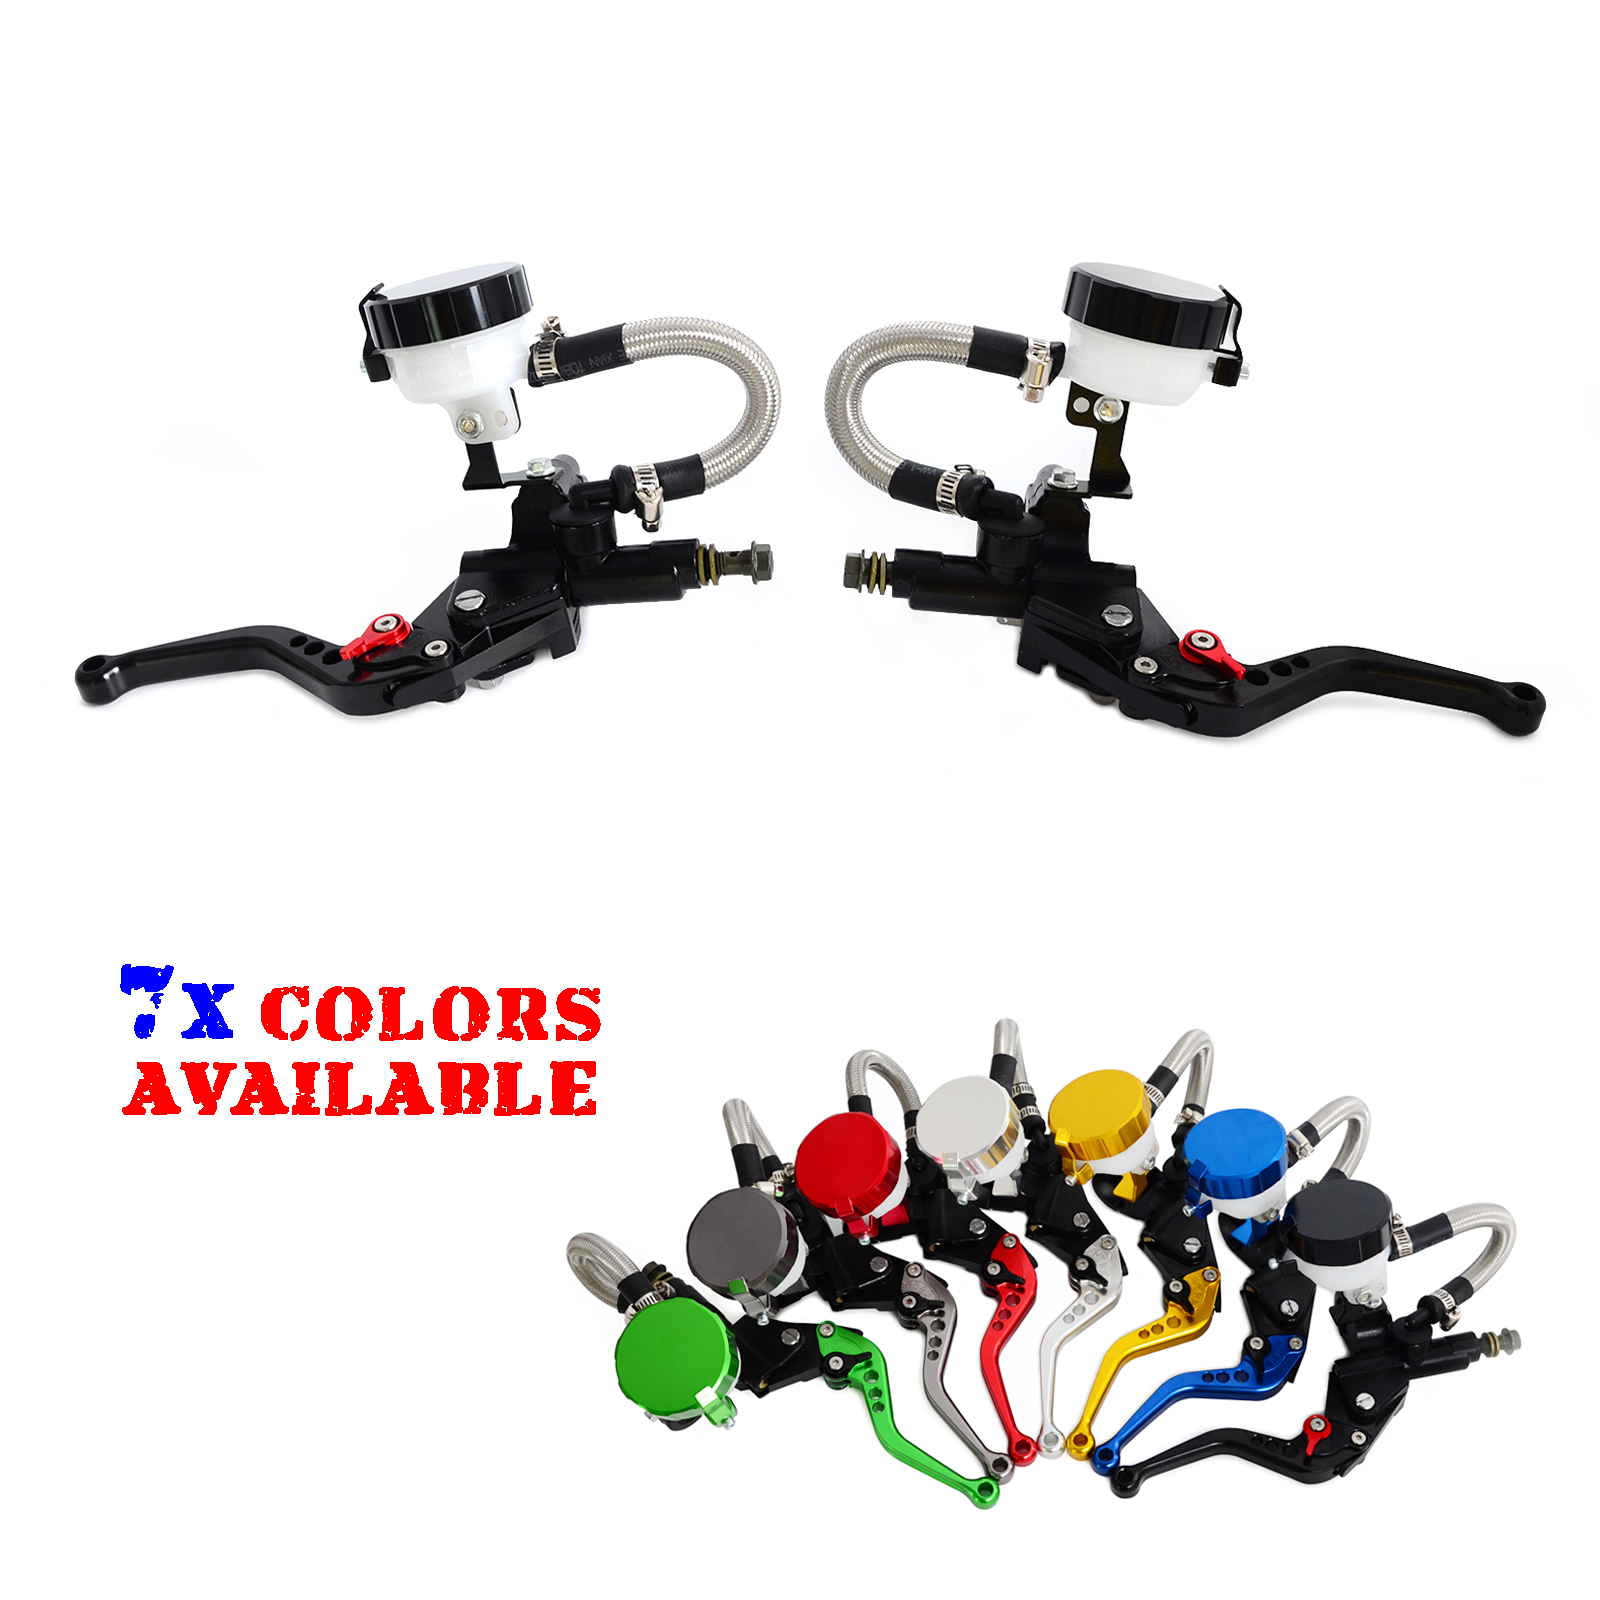 NICECNC Universal Motorcycle 7/8Clutch Brake Levers Master Cylinder Oil Fluid Reservoir Motocross Enduro Supermoto Dirt Bike 270mm front brake disc rotor for cr 125 250 500 crf 250r 250x 450x 450r 230f motocross supermoto enduro dirt bike off road